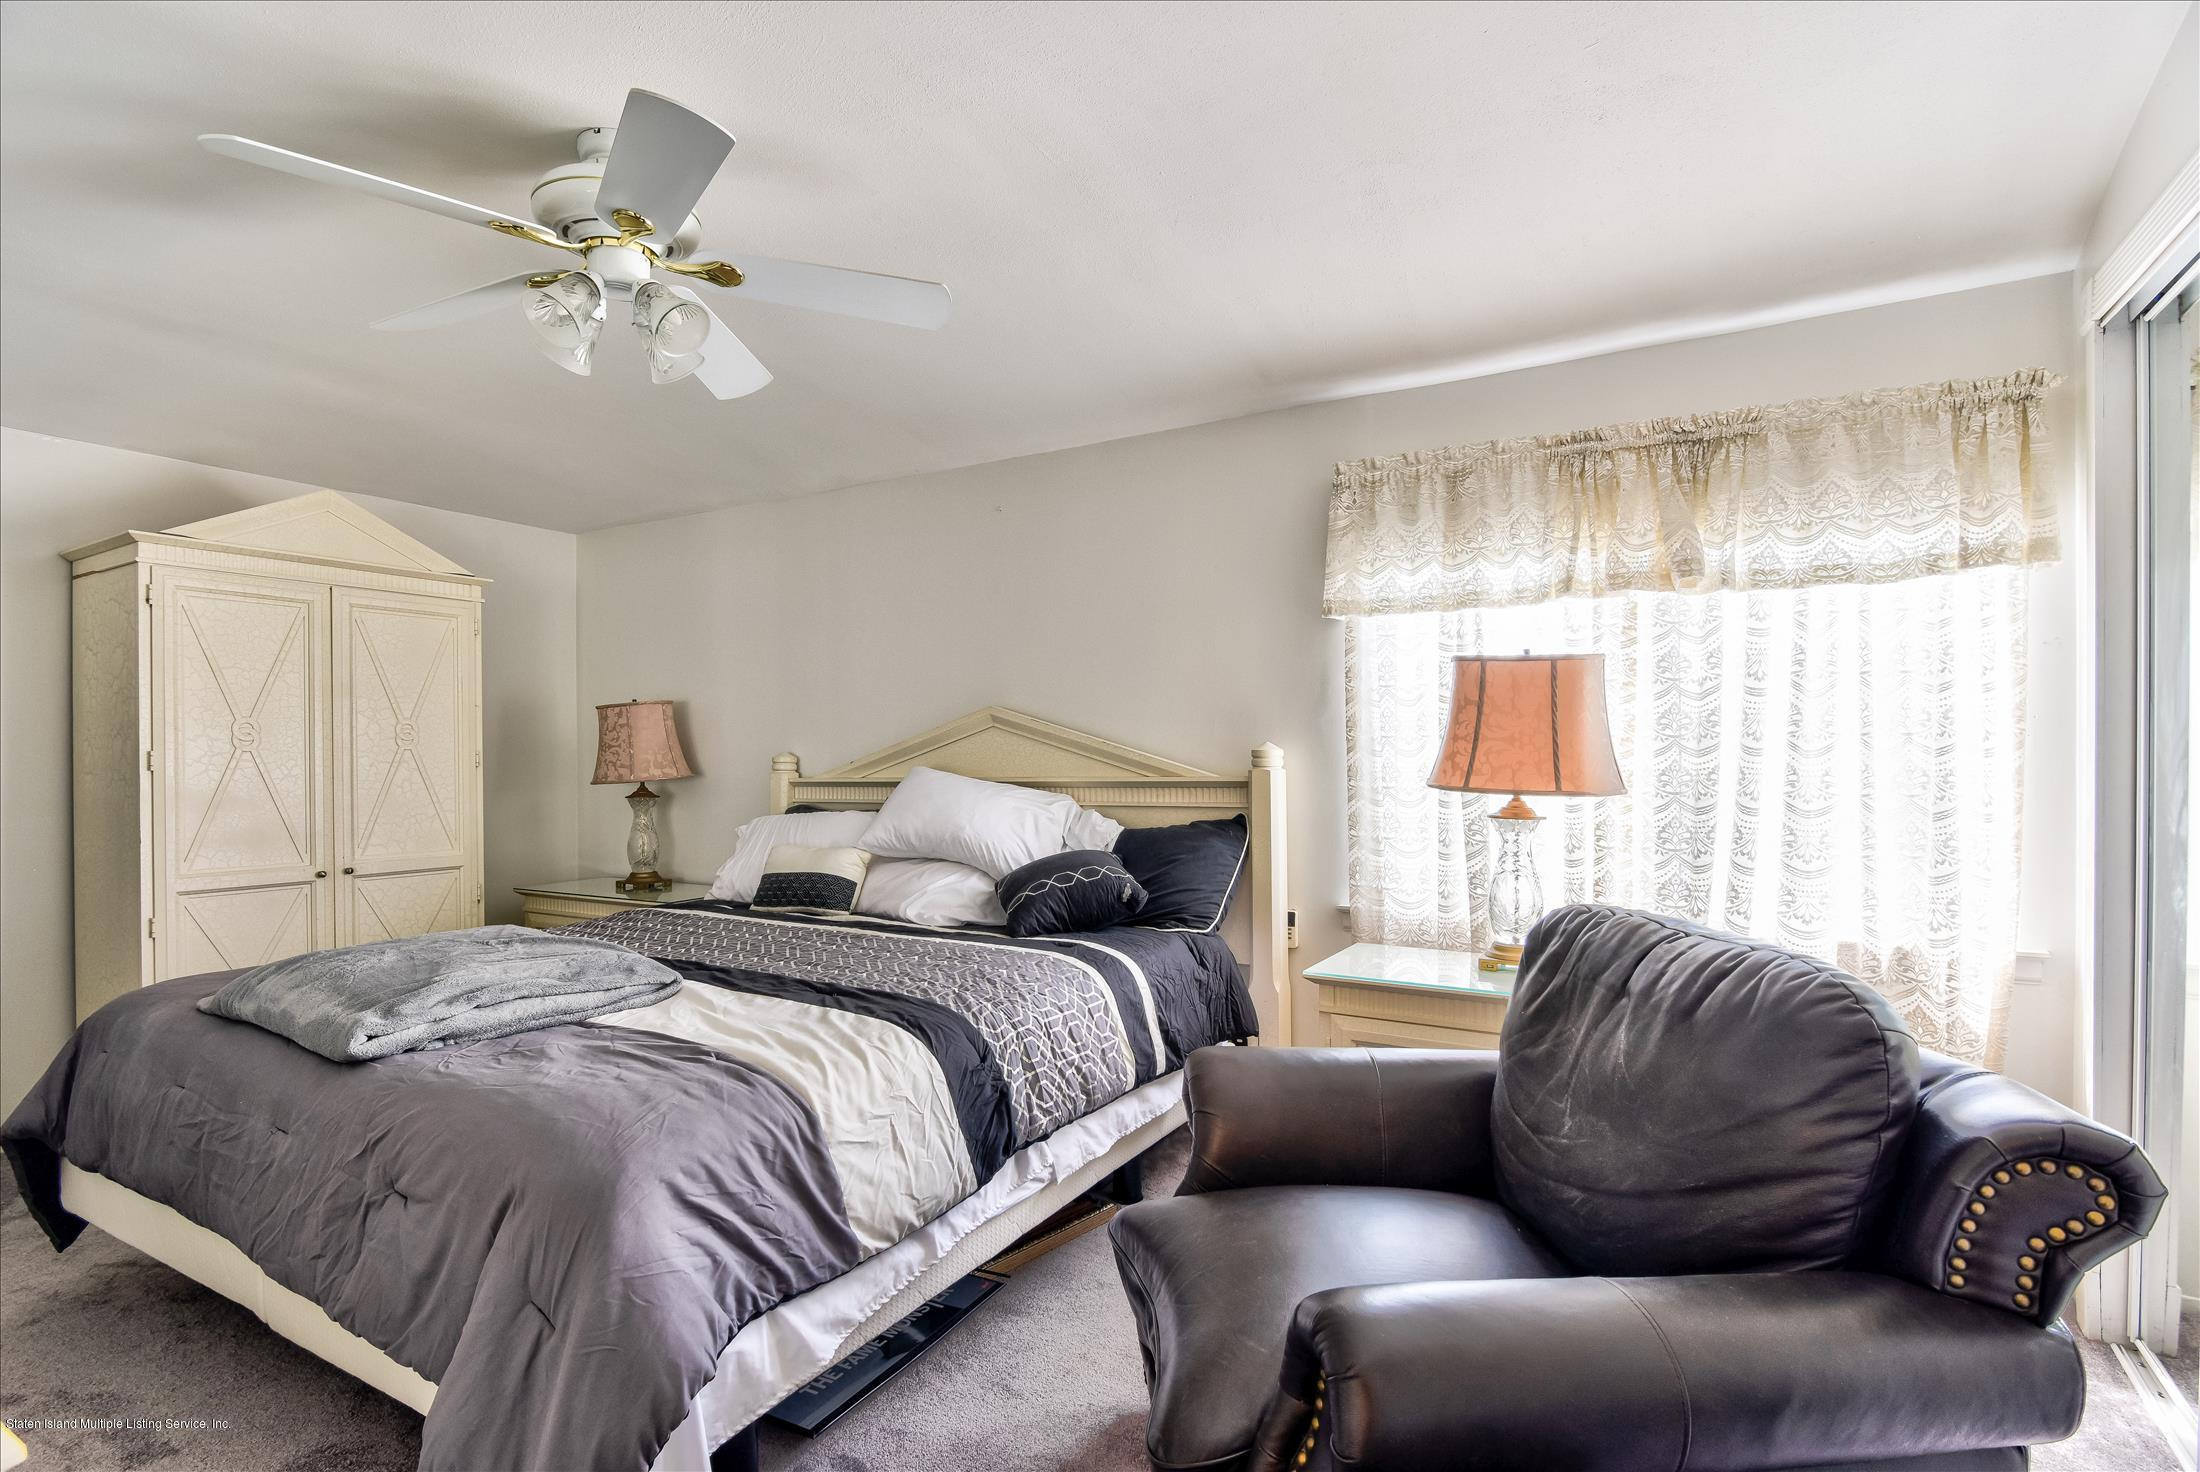 Single Family - Attached 833 Rensselaer Avenue  Staten Island, NY 10309, MLS-1125461-15